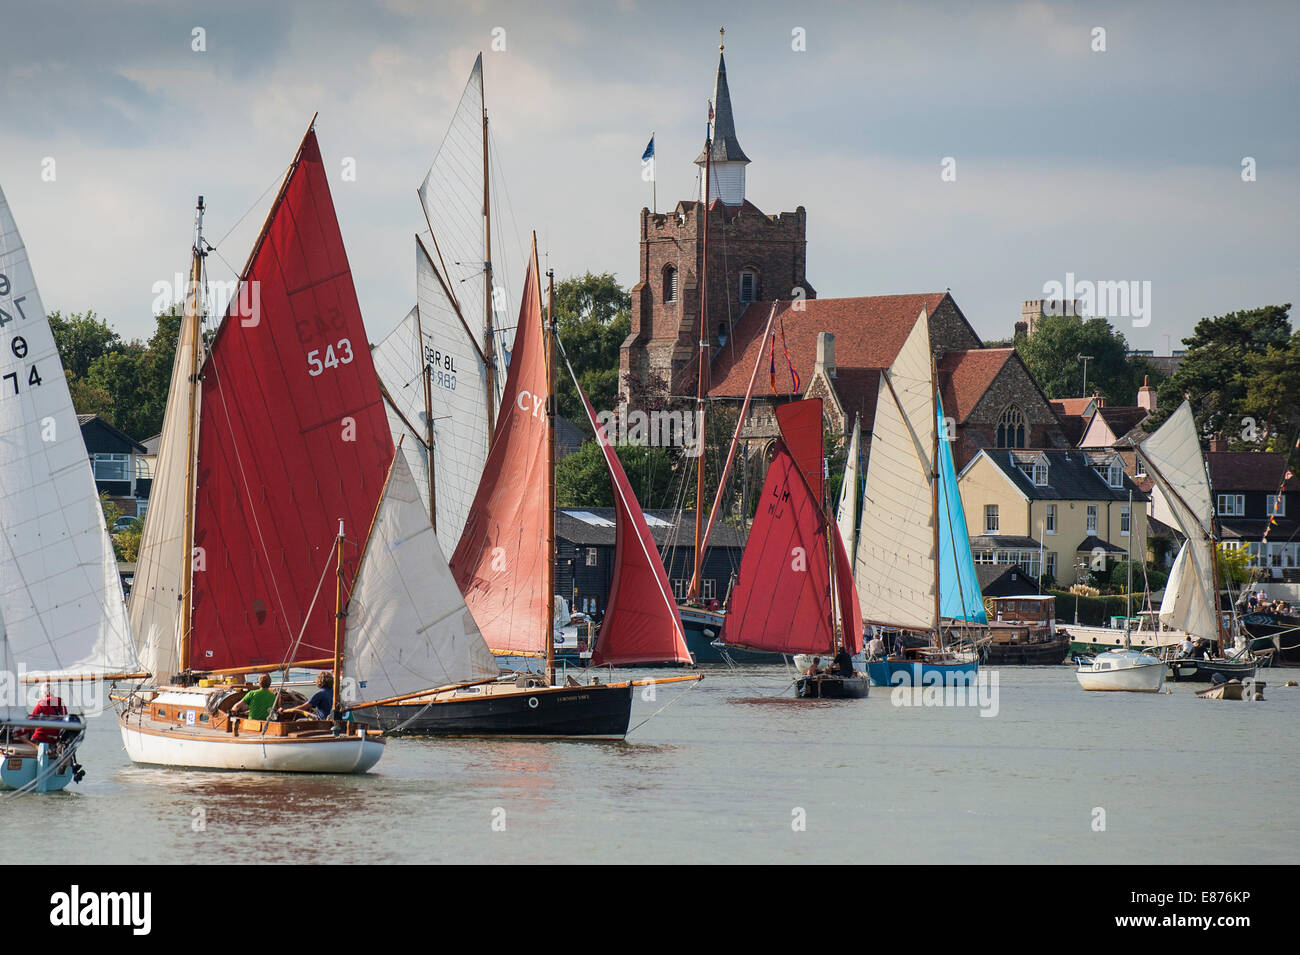 Various sailing craft participate in the spectacular Parade of Sail at the Maldon Regatta in Essex. - Stock Image